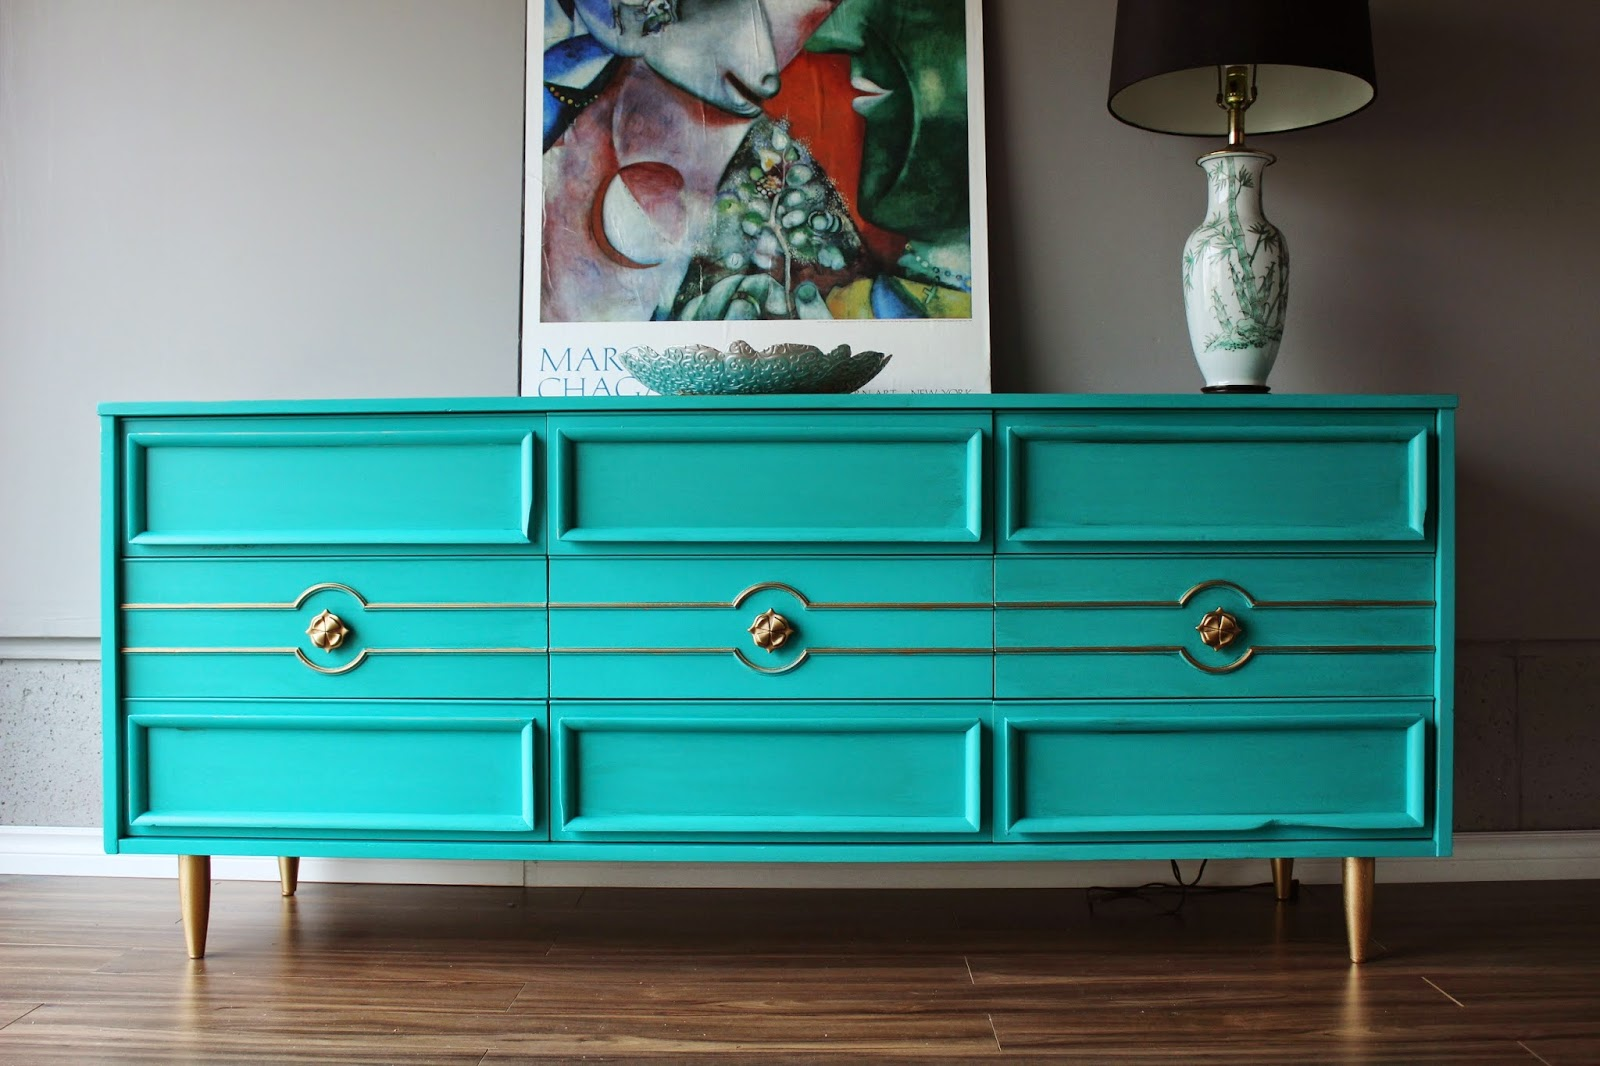 http://re-tiqued.blogspot.ca/2014/11/teal-and-goldoh-so-bold.htmlhttp://re-tiqued.blogspot.ca/2014/11/teal-and-goldoh-so-bold.html